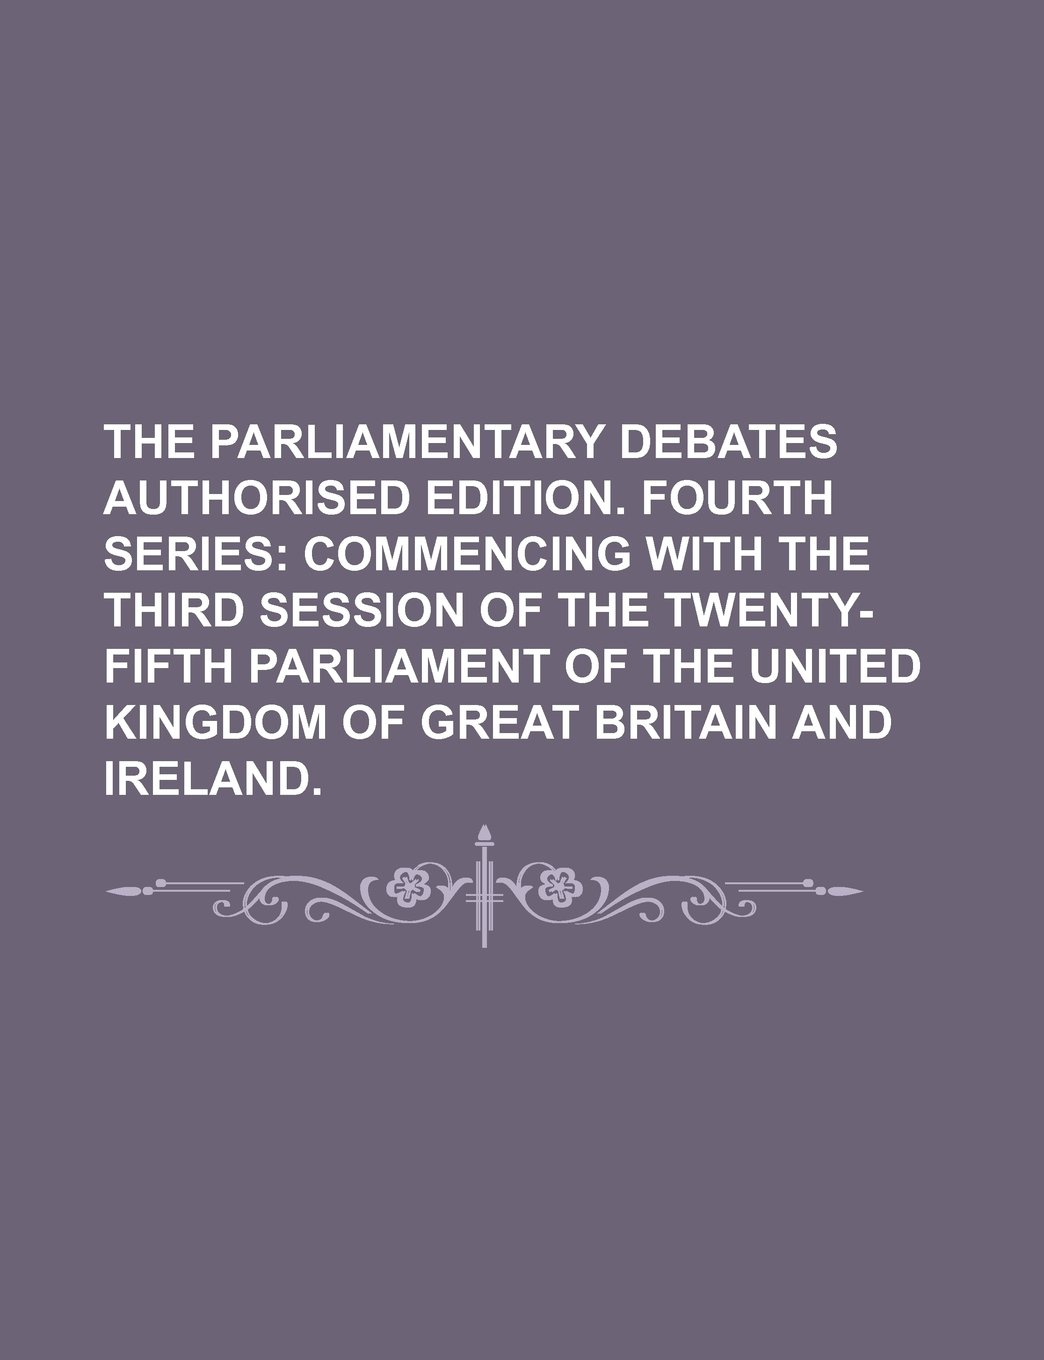 Read Online THE PARLIAMENTARY DEBATES AUTHORISED EDITION. FOURTH SERIES;  COMMENCING WITH THE THIRD SESSION OF THE TWENTY-FIFTH PARLIAMENT OF THE UNITED KINGDOM OF GREAT BRITAIN AND IRELAND. PDF